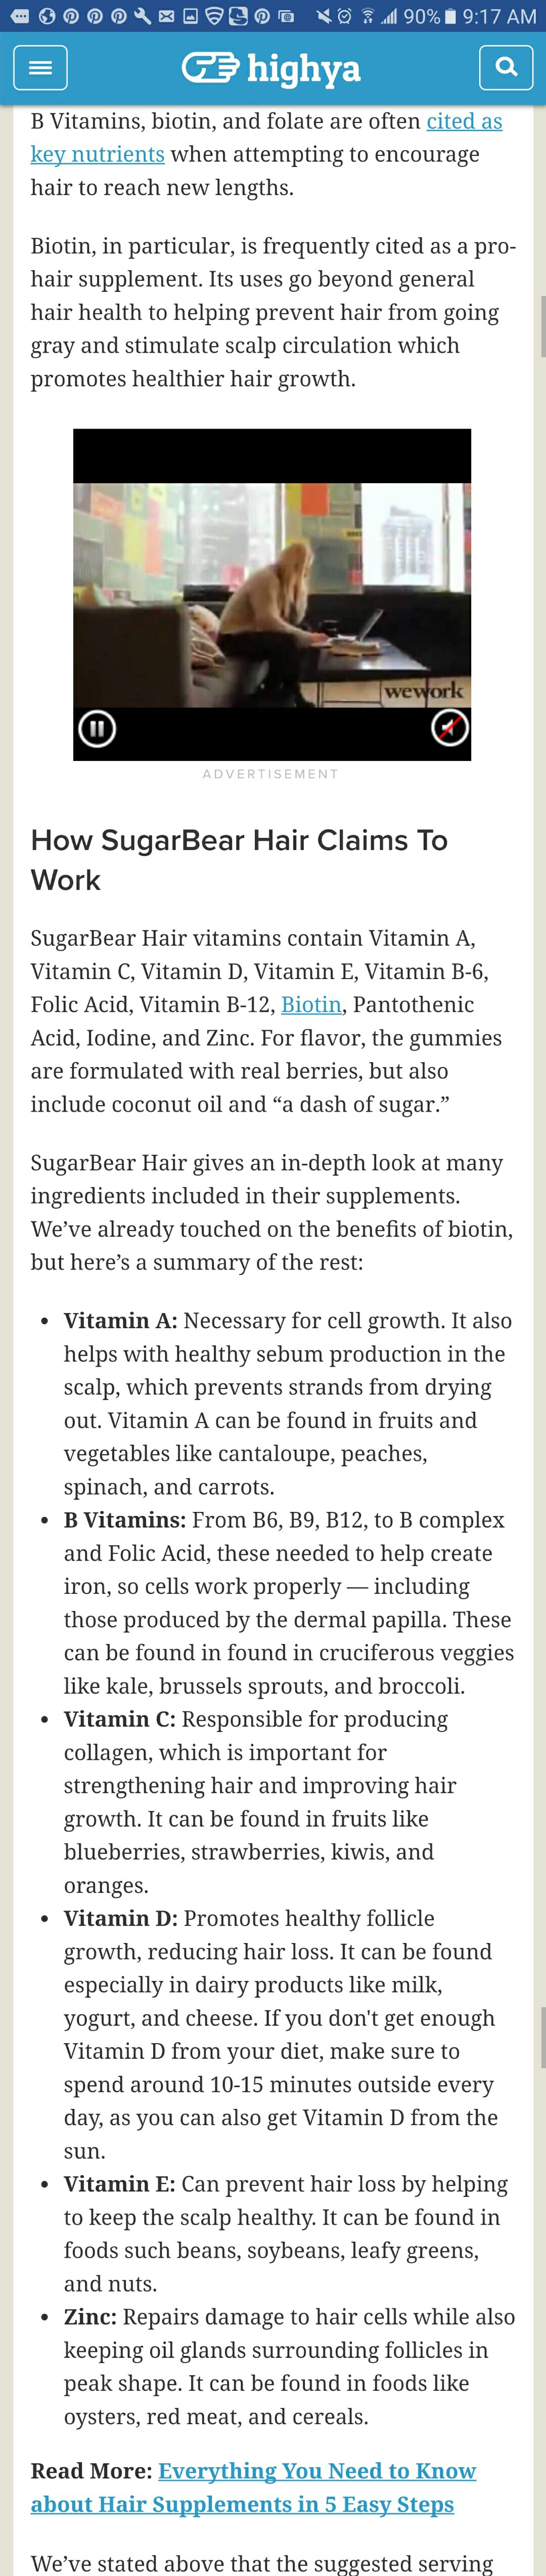 Key nutrients for healthy hair